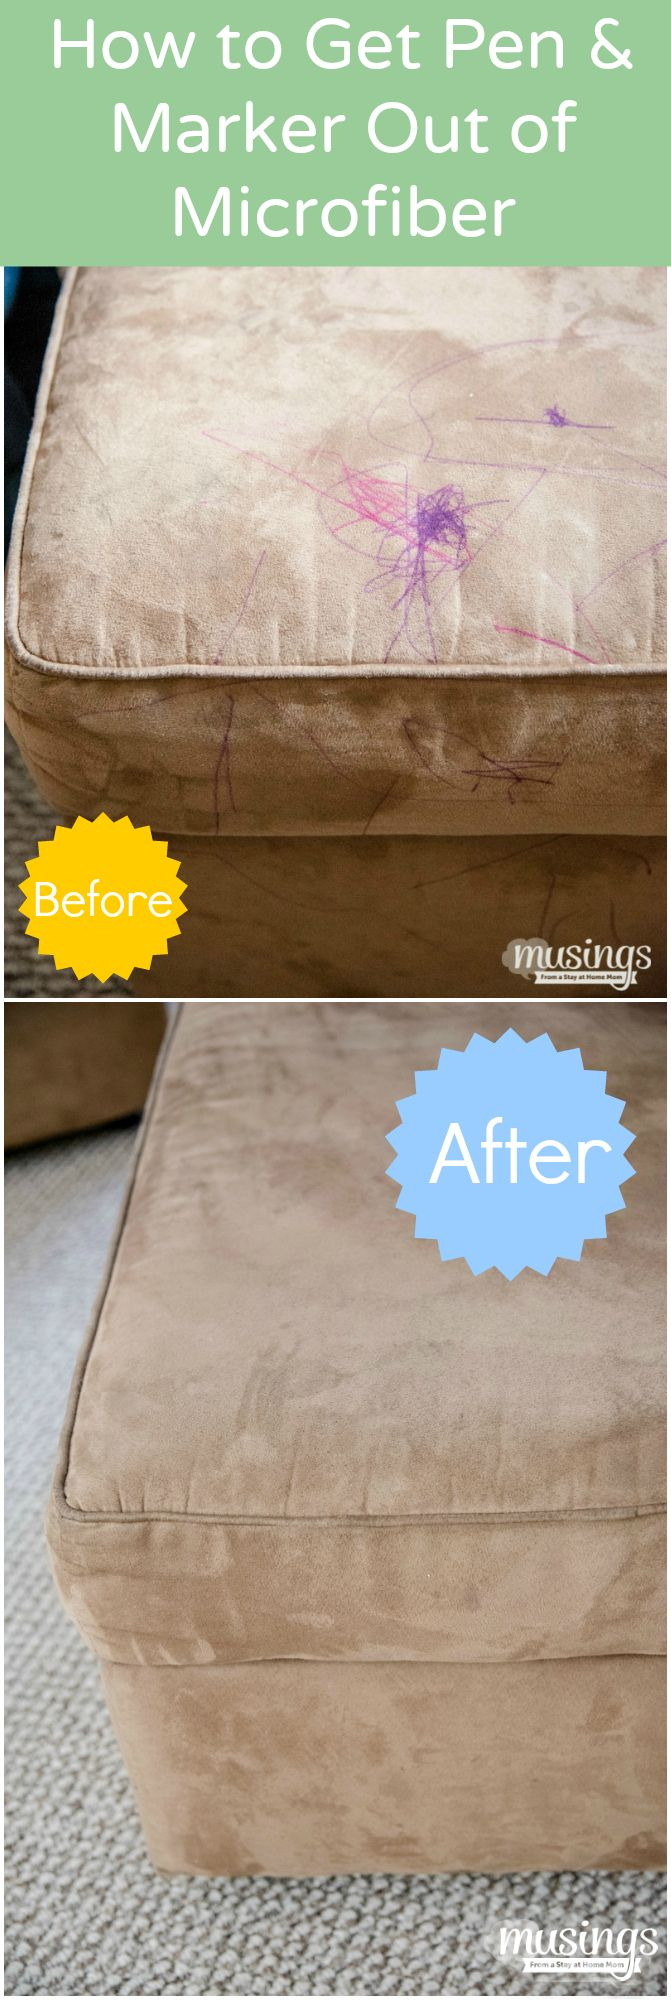 Cleaning Tips: How to Get Pen and Marker out of a Microfiber Couch